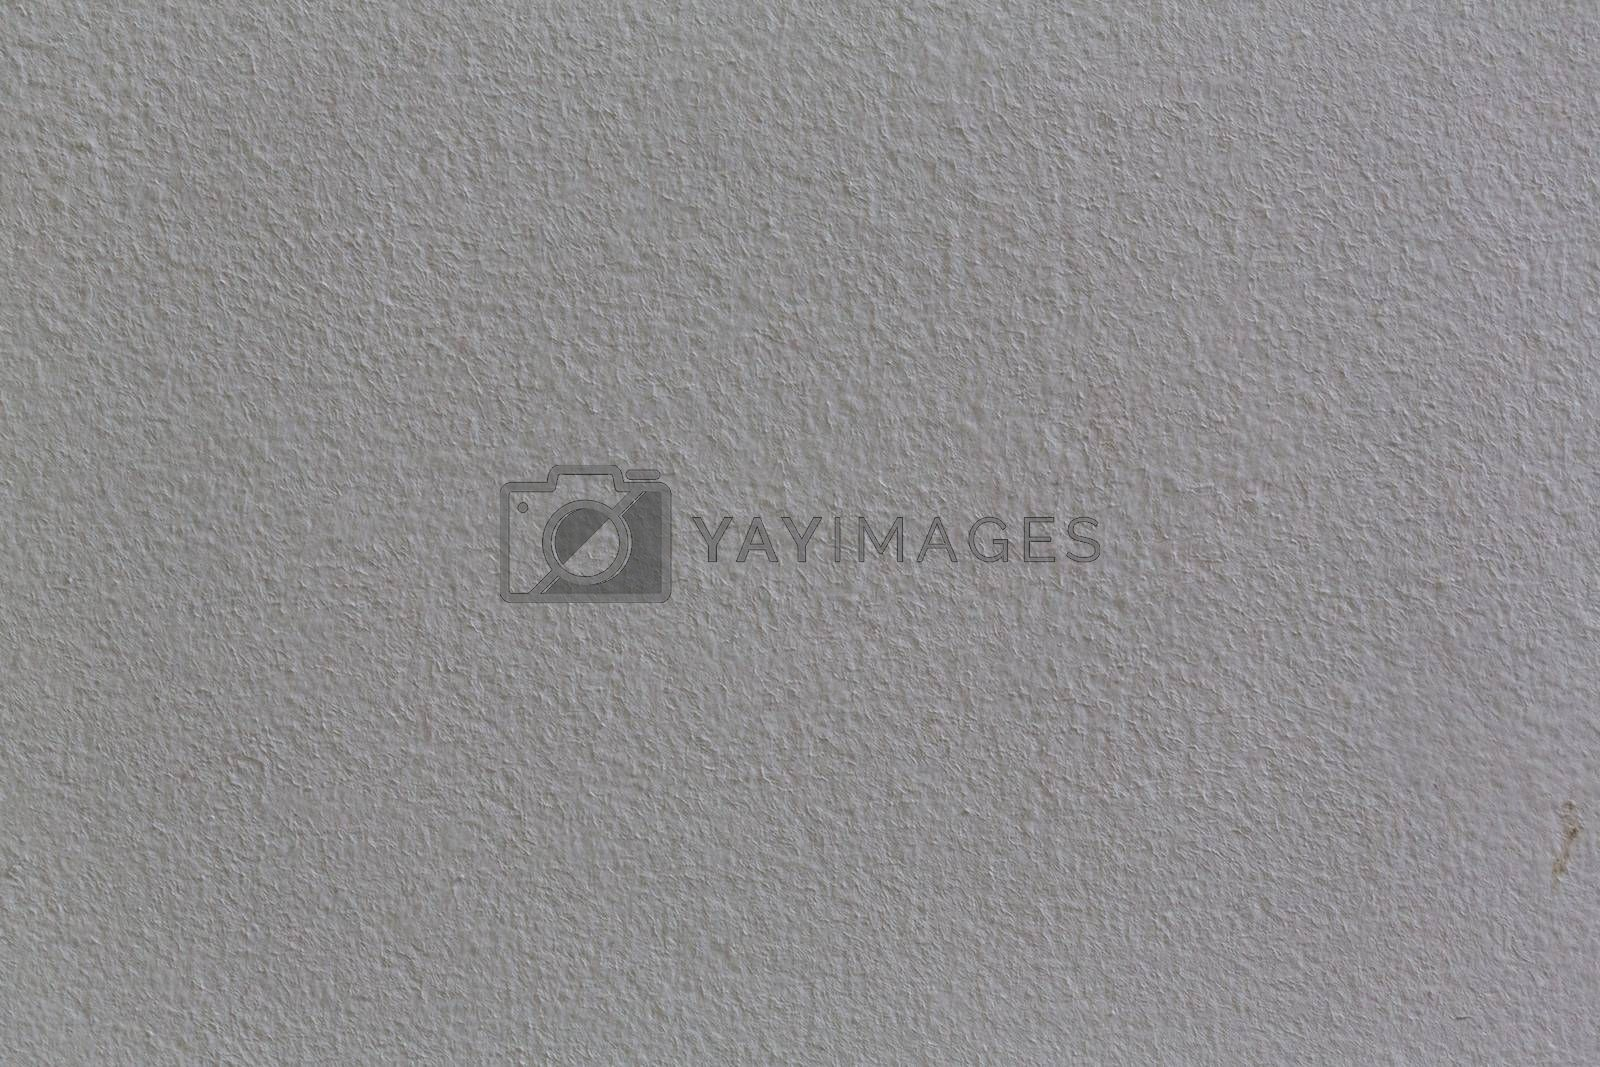 Concrete asphalted surface background